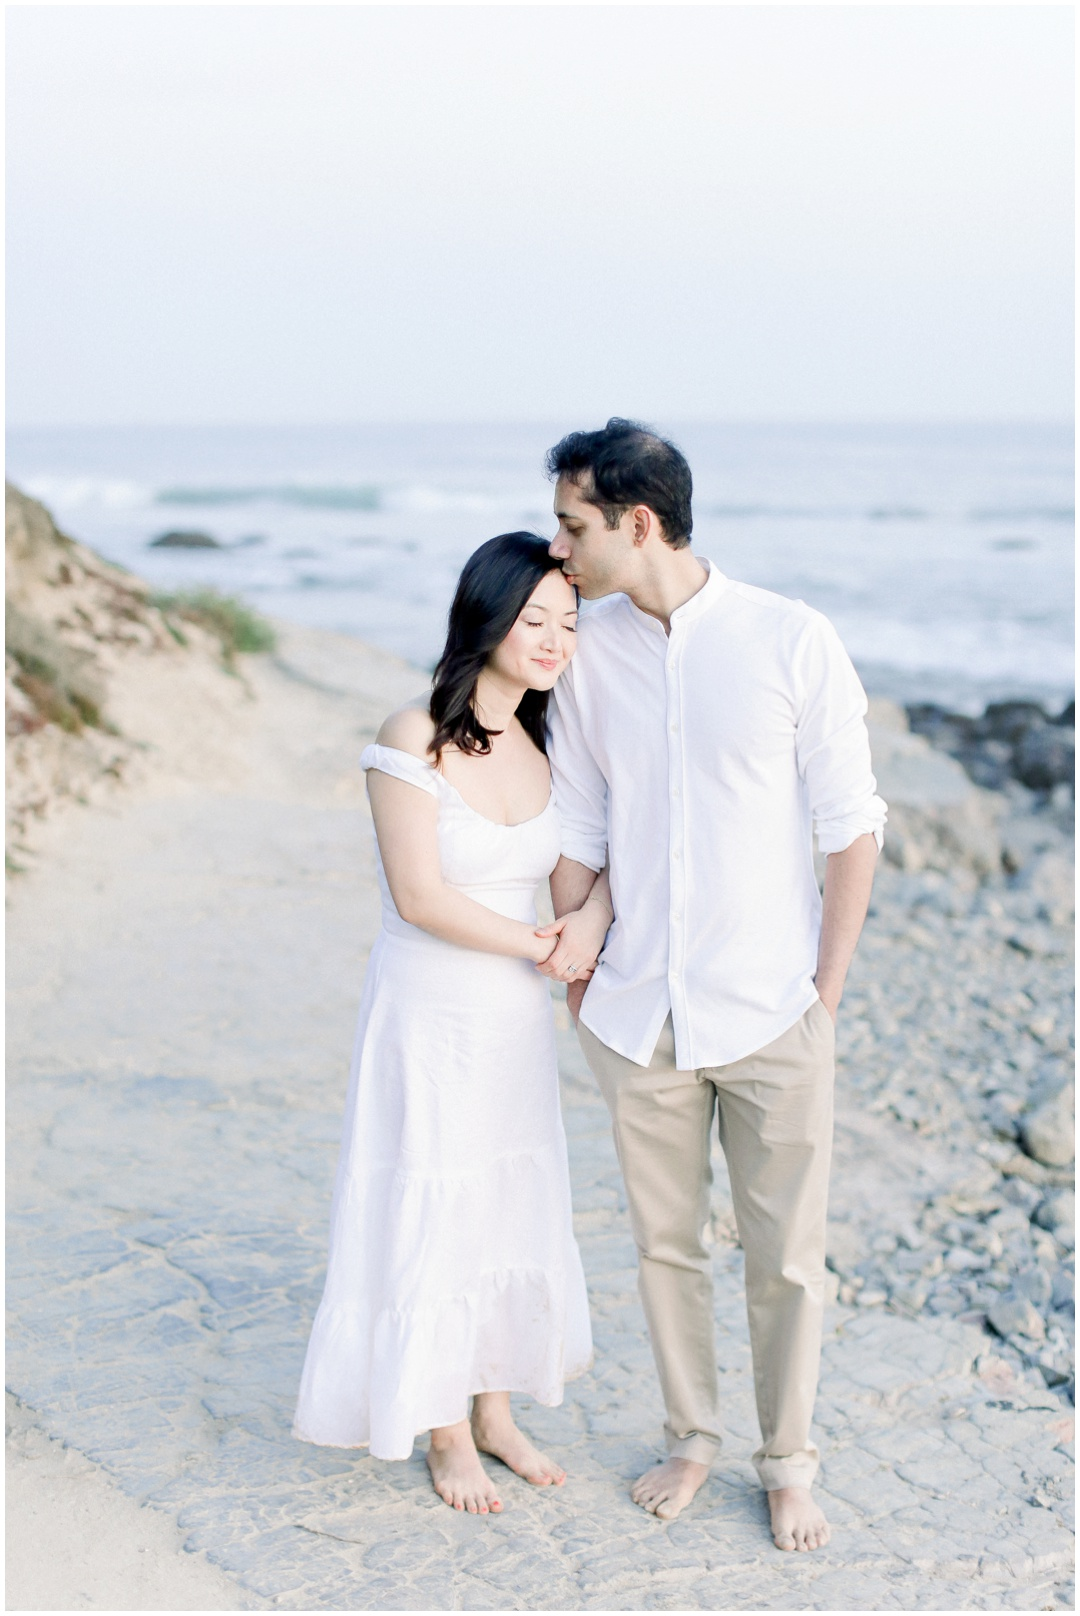 Newport_Beach_Newborn_Light_Airy_Natural_Photographer_Newport_Beach_Photographer_Orange_County_Family_Photographer_Cori_Kleckner_Photography_Huntington_Beach_Photographer_Family_OC_Newborn_Christine_Cho_Family_session__3394.jpg